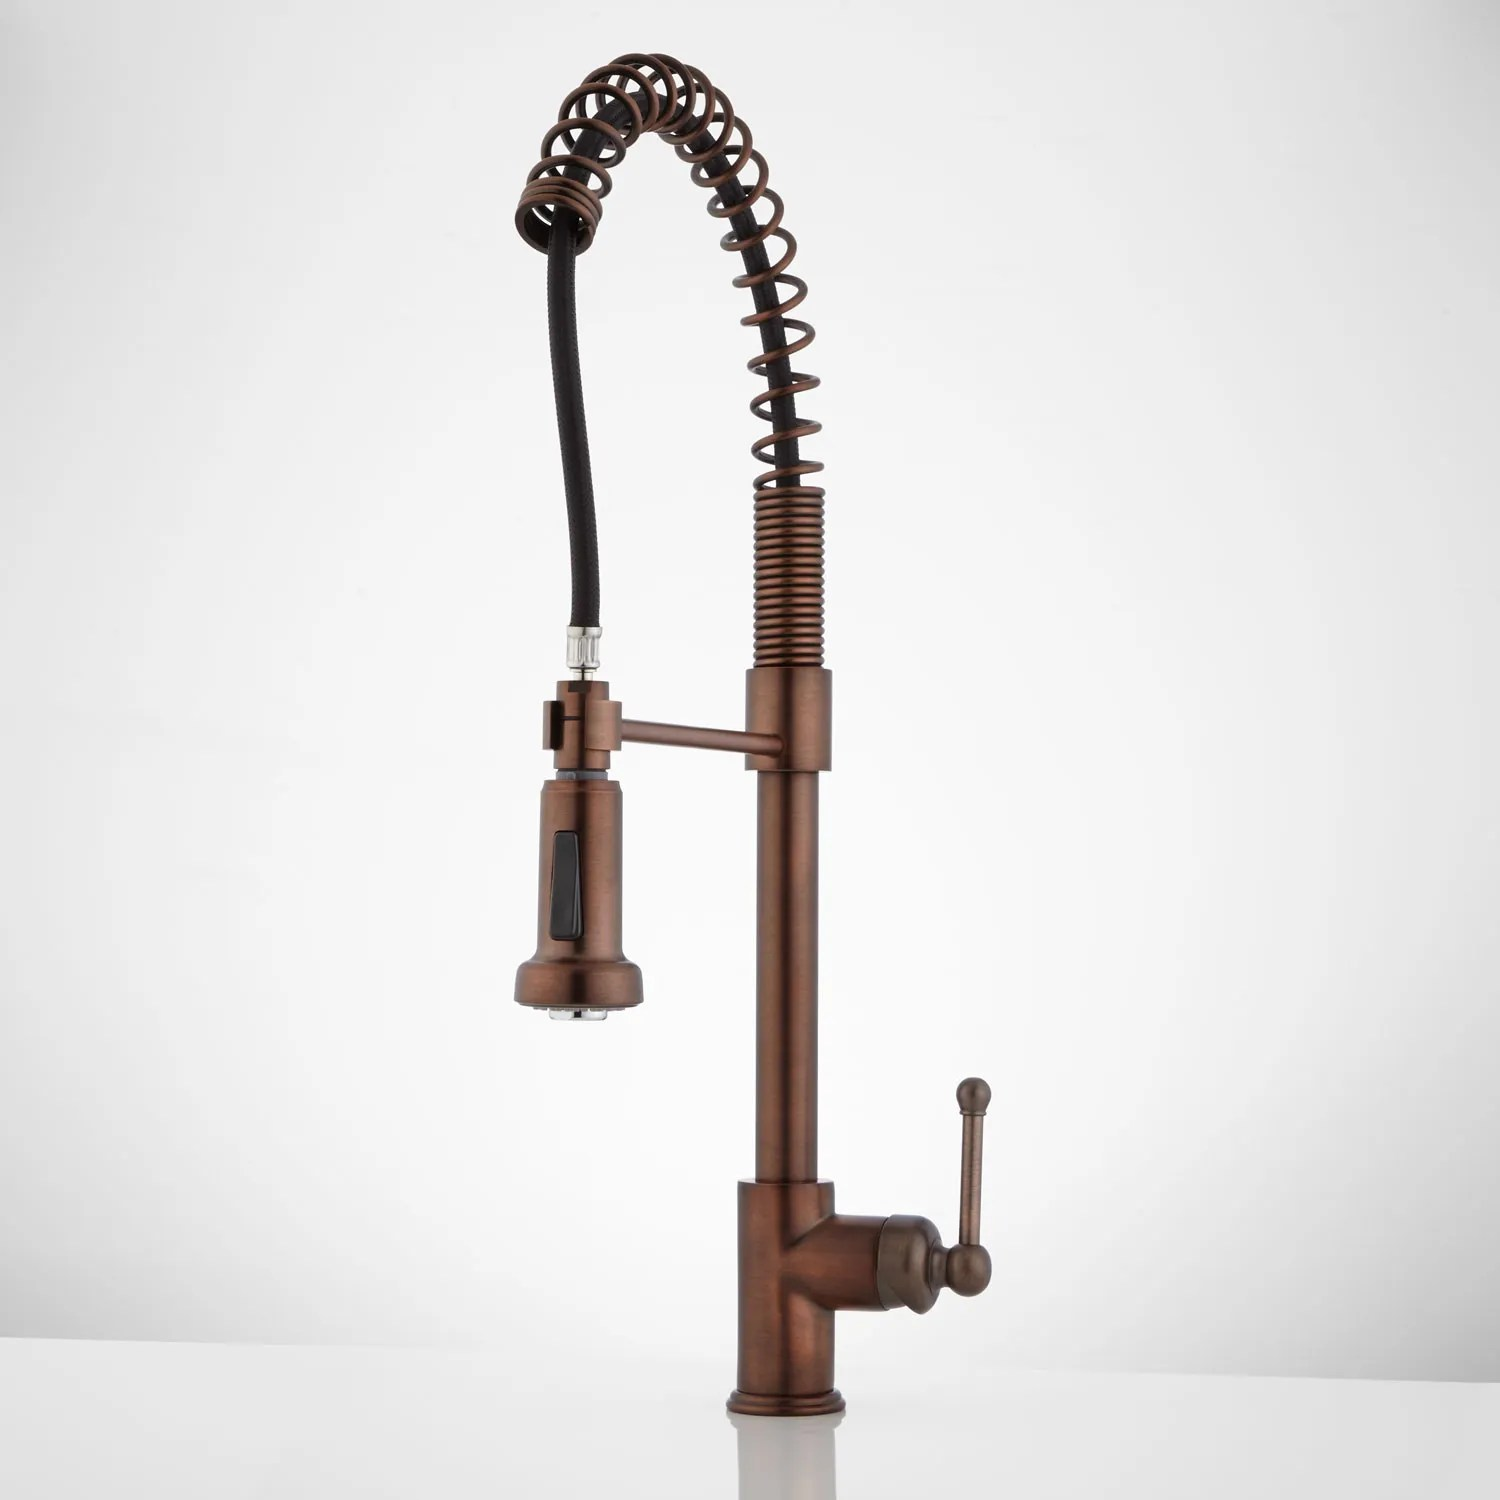 rachel pull down kitchen faucet with spring spout kitchen faucet bronze Oil Rubbed Bronze